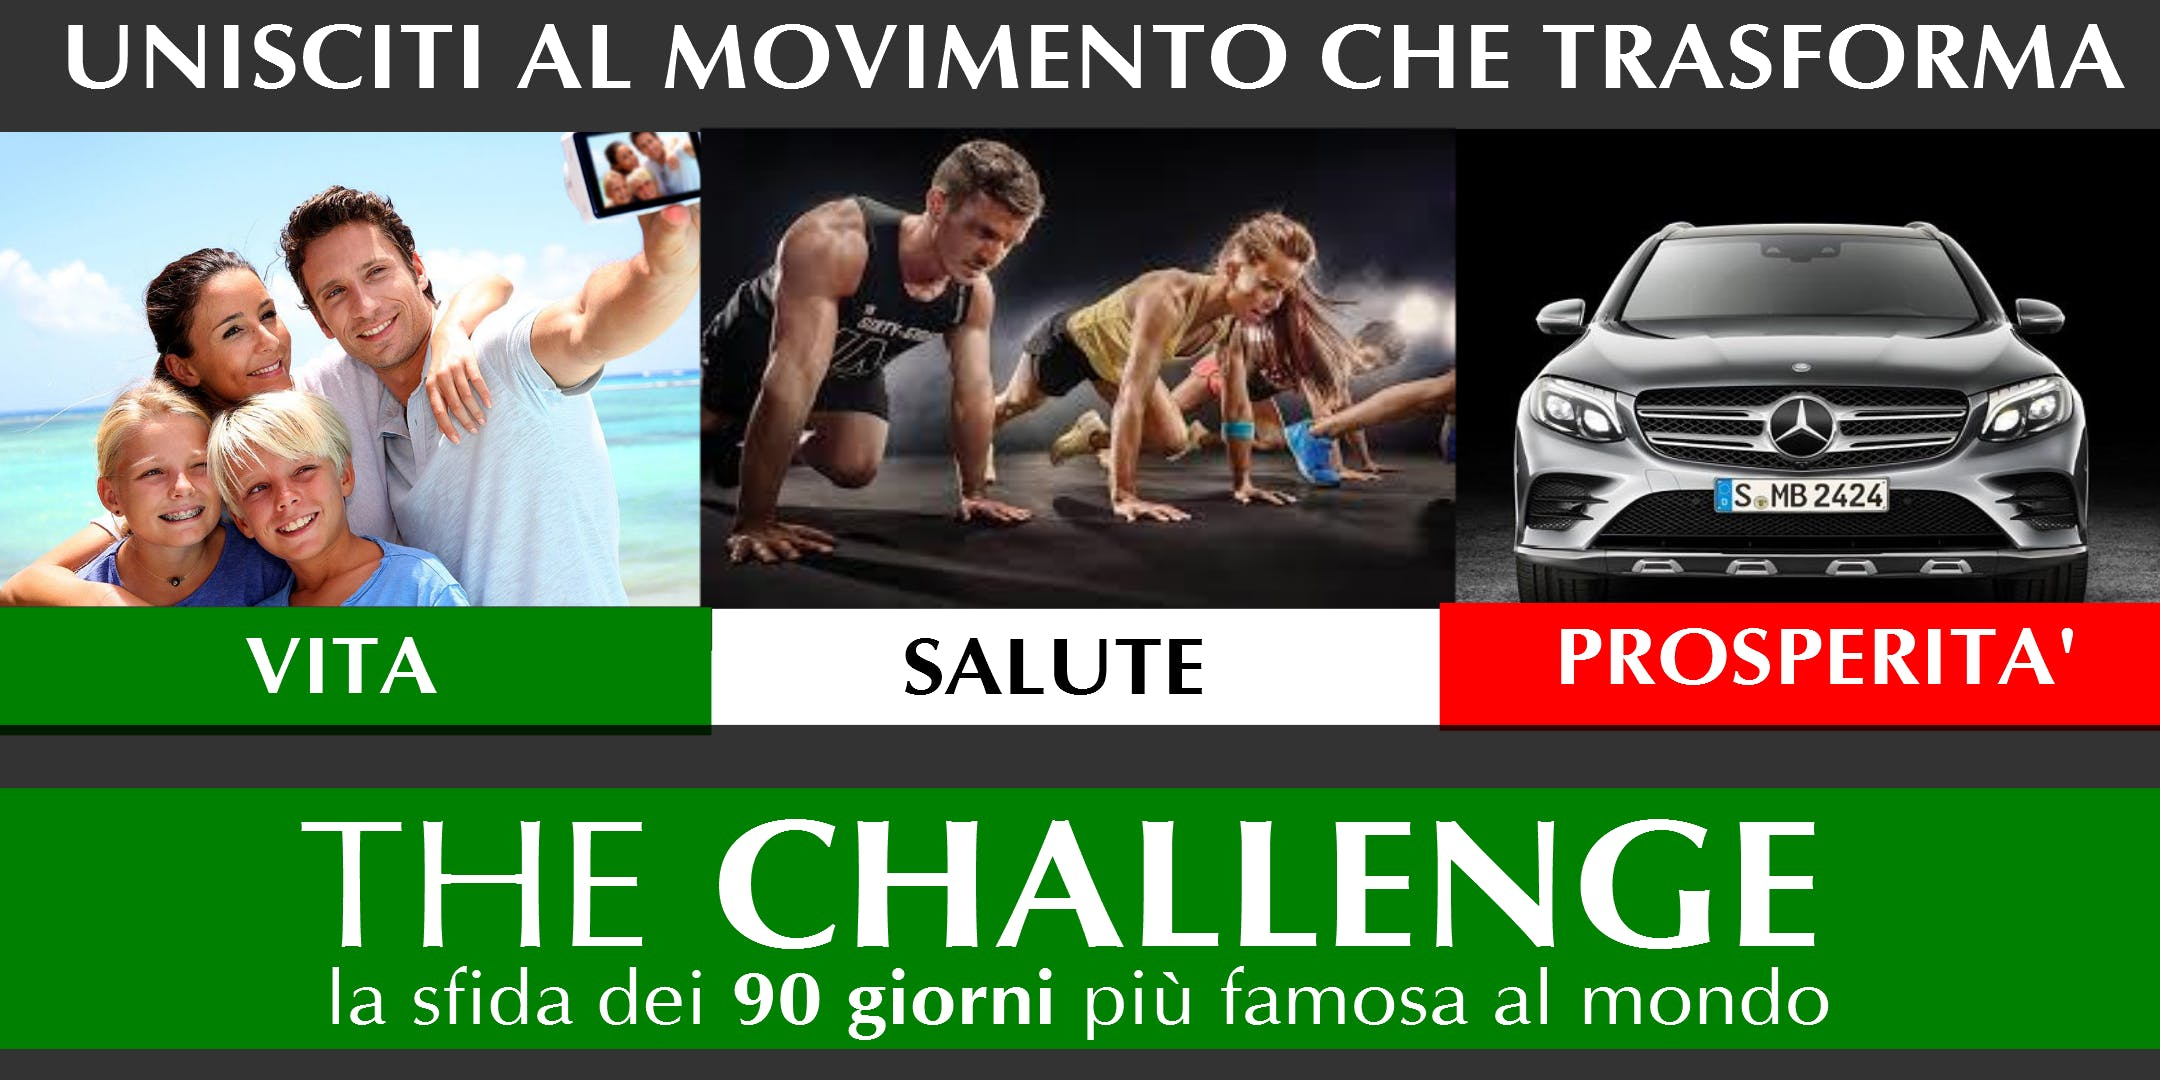 TheCHALLENGE (TO) 25/06